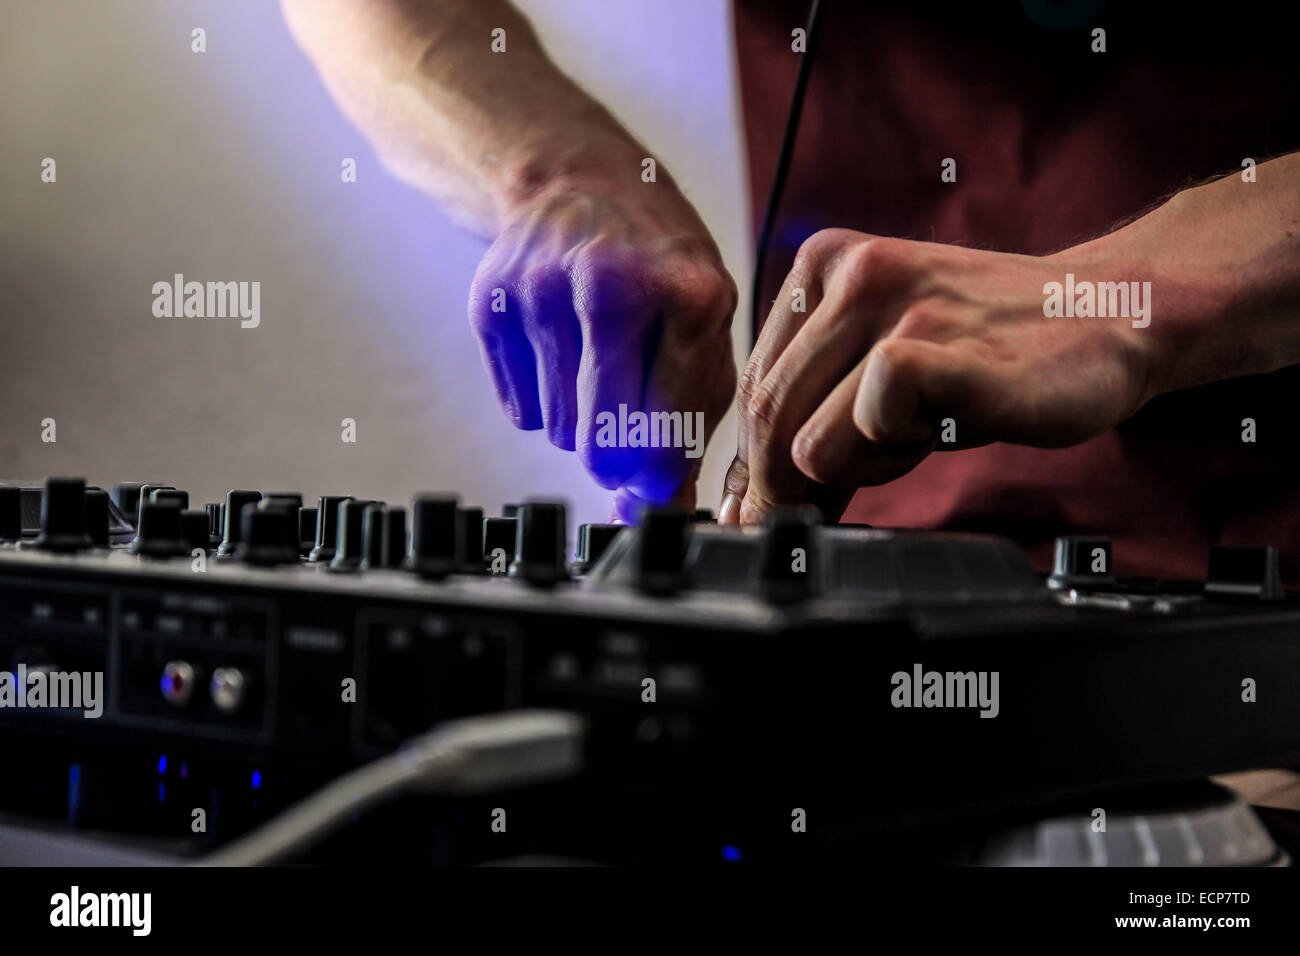 Abstract man Djing/Mixing on the Decks at a party/event - Stock Image